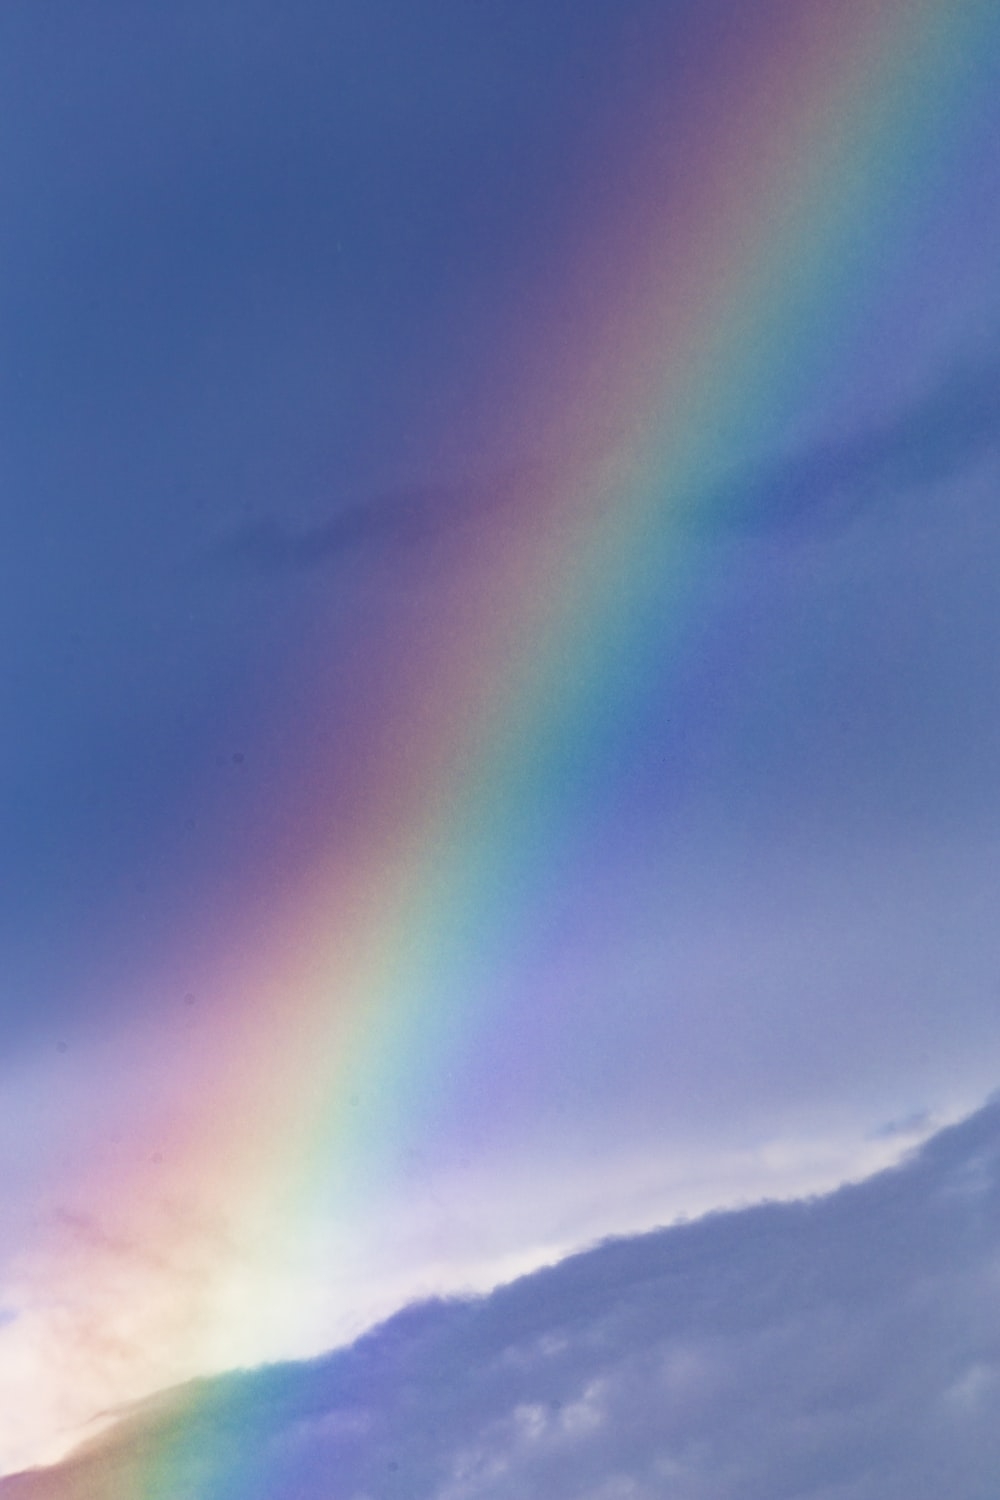 rainbow over the clouds during daytime